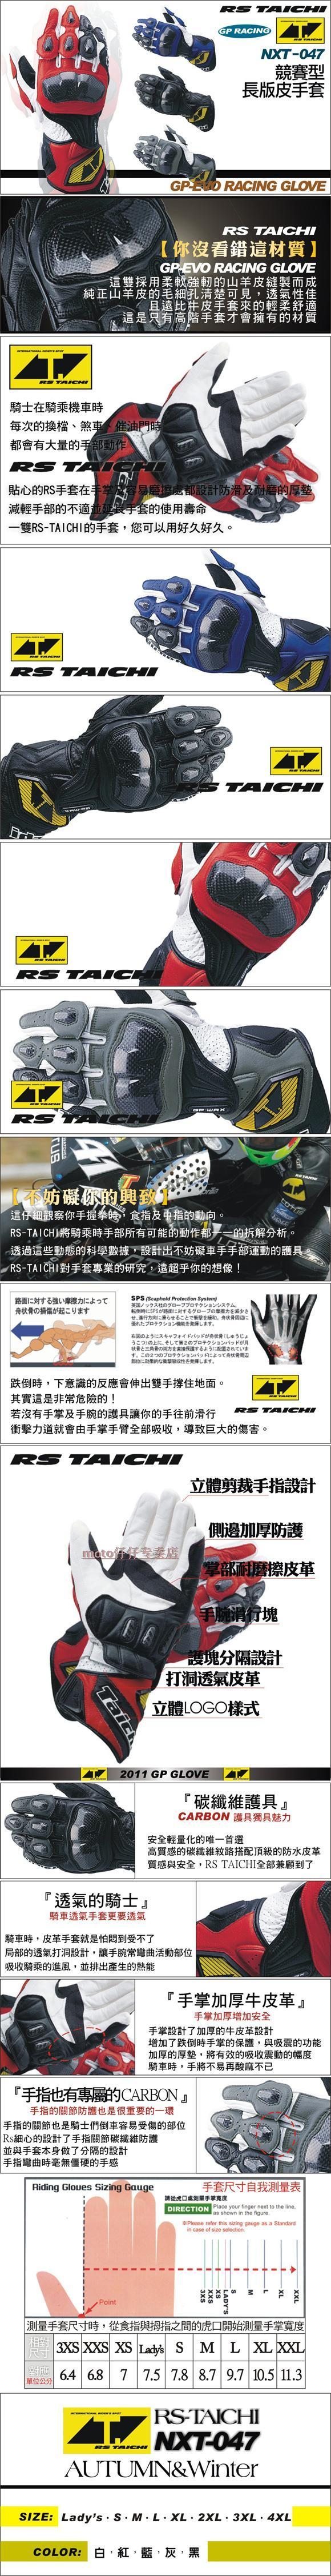 Japanese leather motorcycle gloves - Special New Export Rs At Taichi Top Racing Gloves Motorcycle Gloves Riding Gloves Protective Gloves